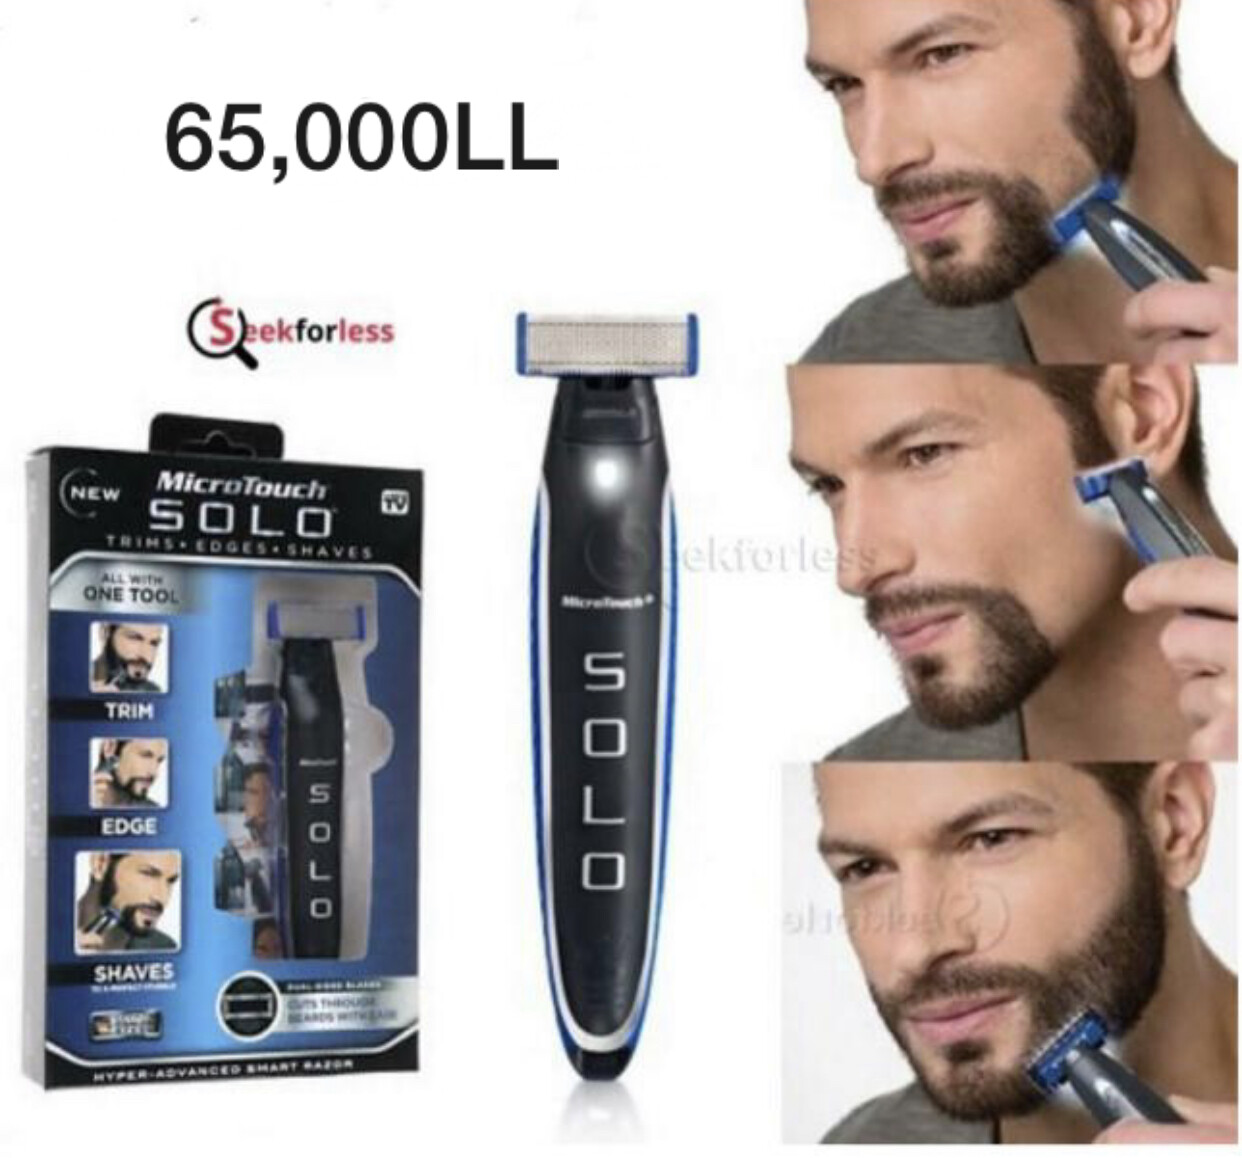 MicroTouch SOLO Shaver